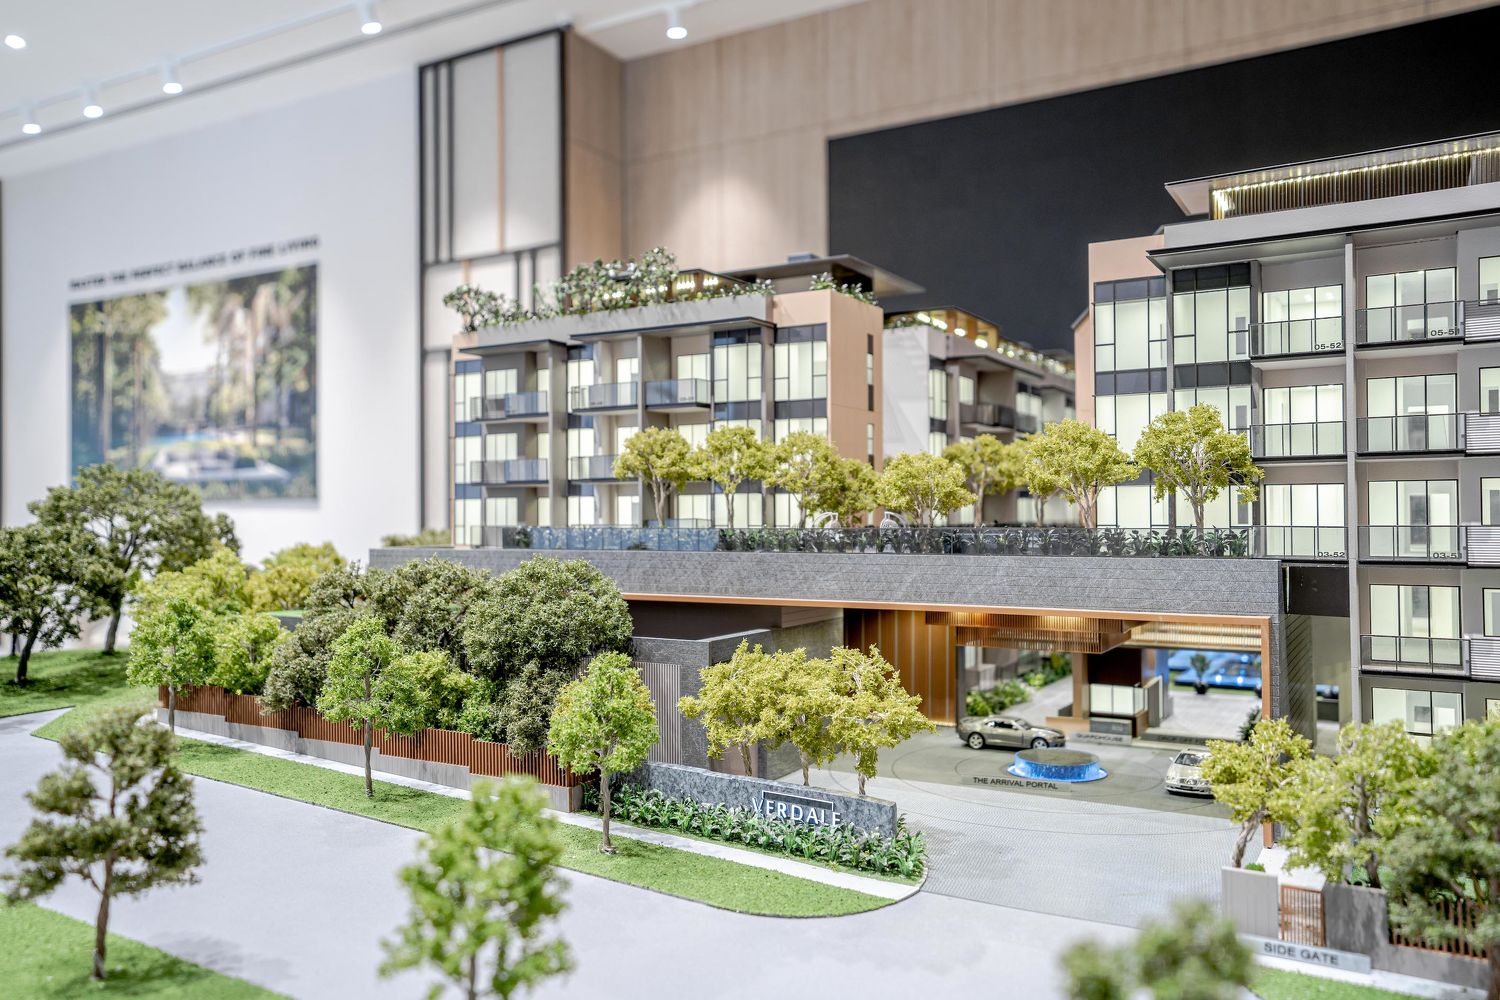 The architectural model of Verdale - EDGEPROP SINGAPORE